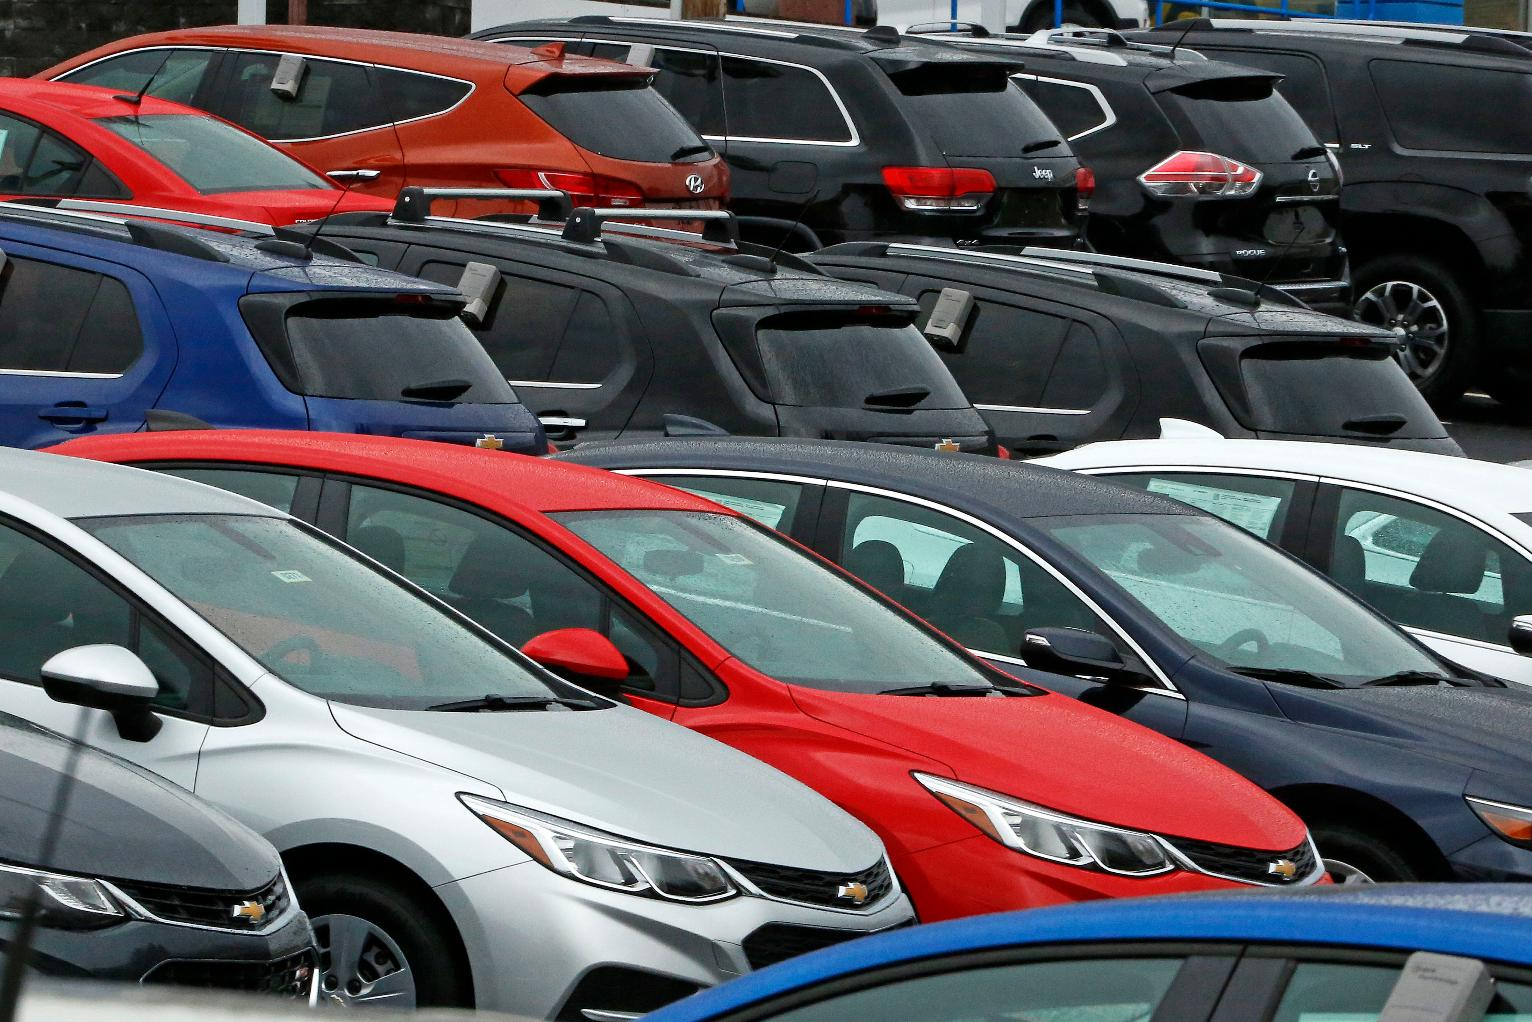 U s auto sales expected to be lower in january business news us news